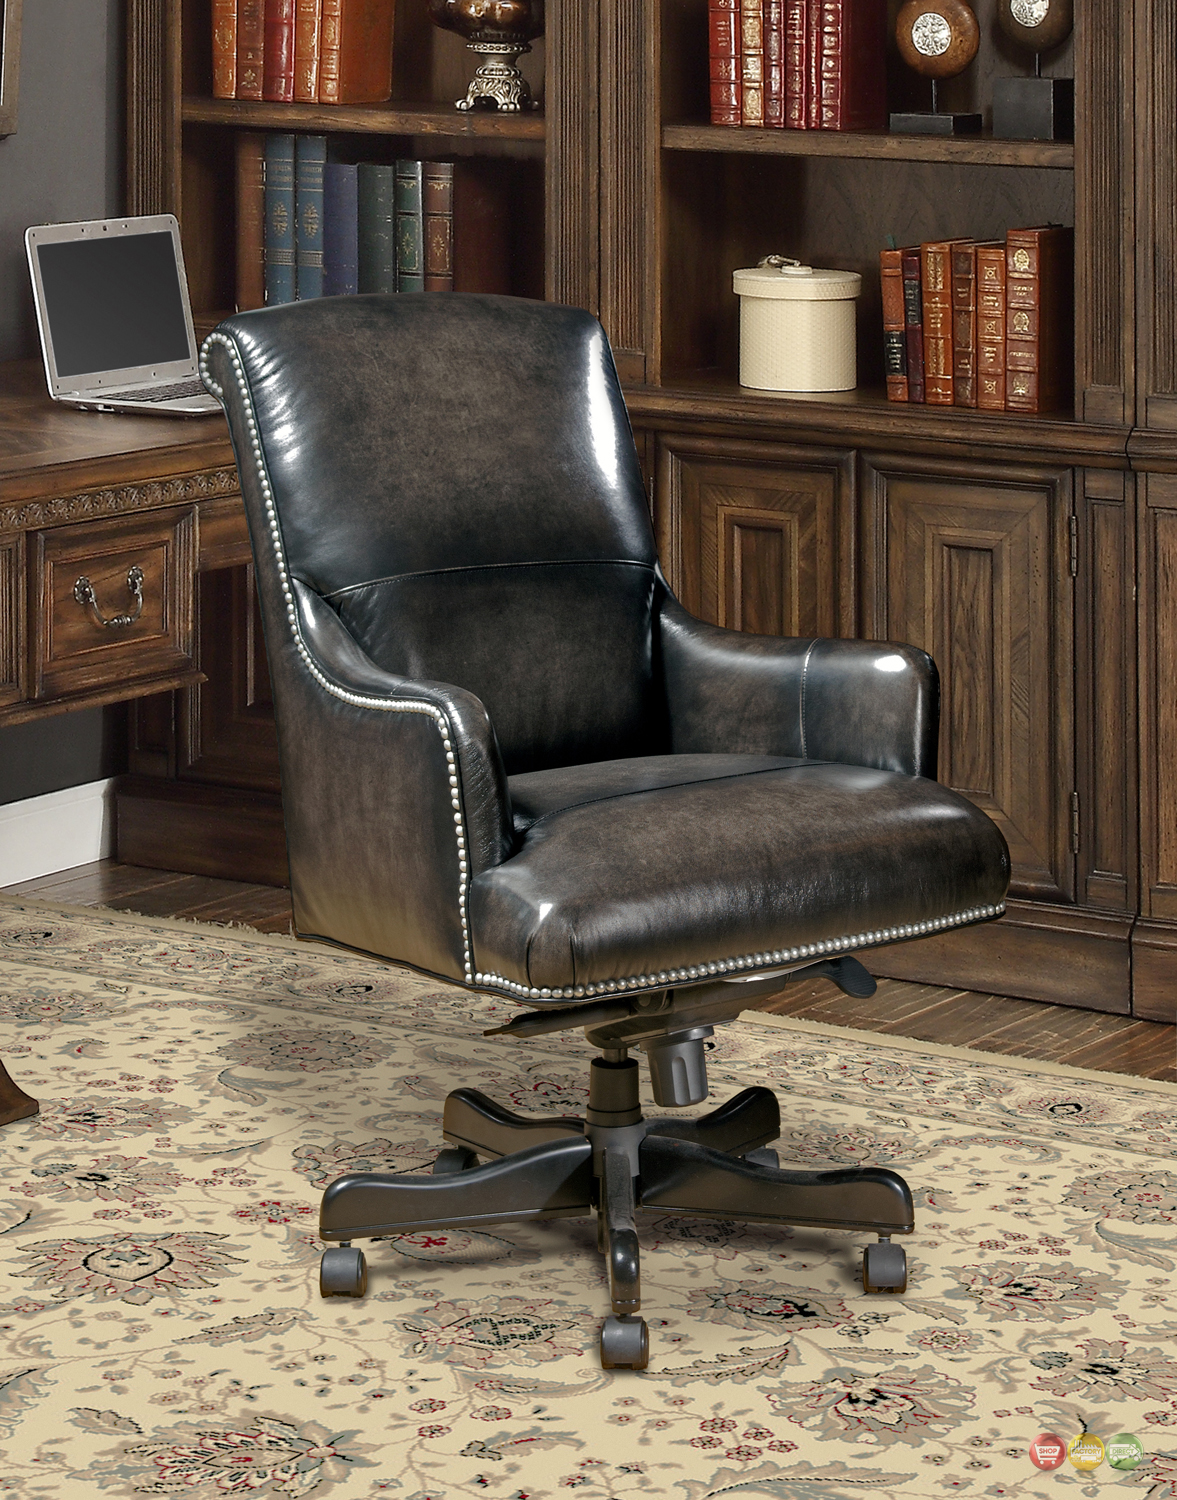 Real Leather Office Chair Brown Genuine Leather Office Desk Chair W Nailhead Trim